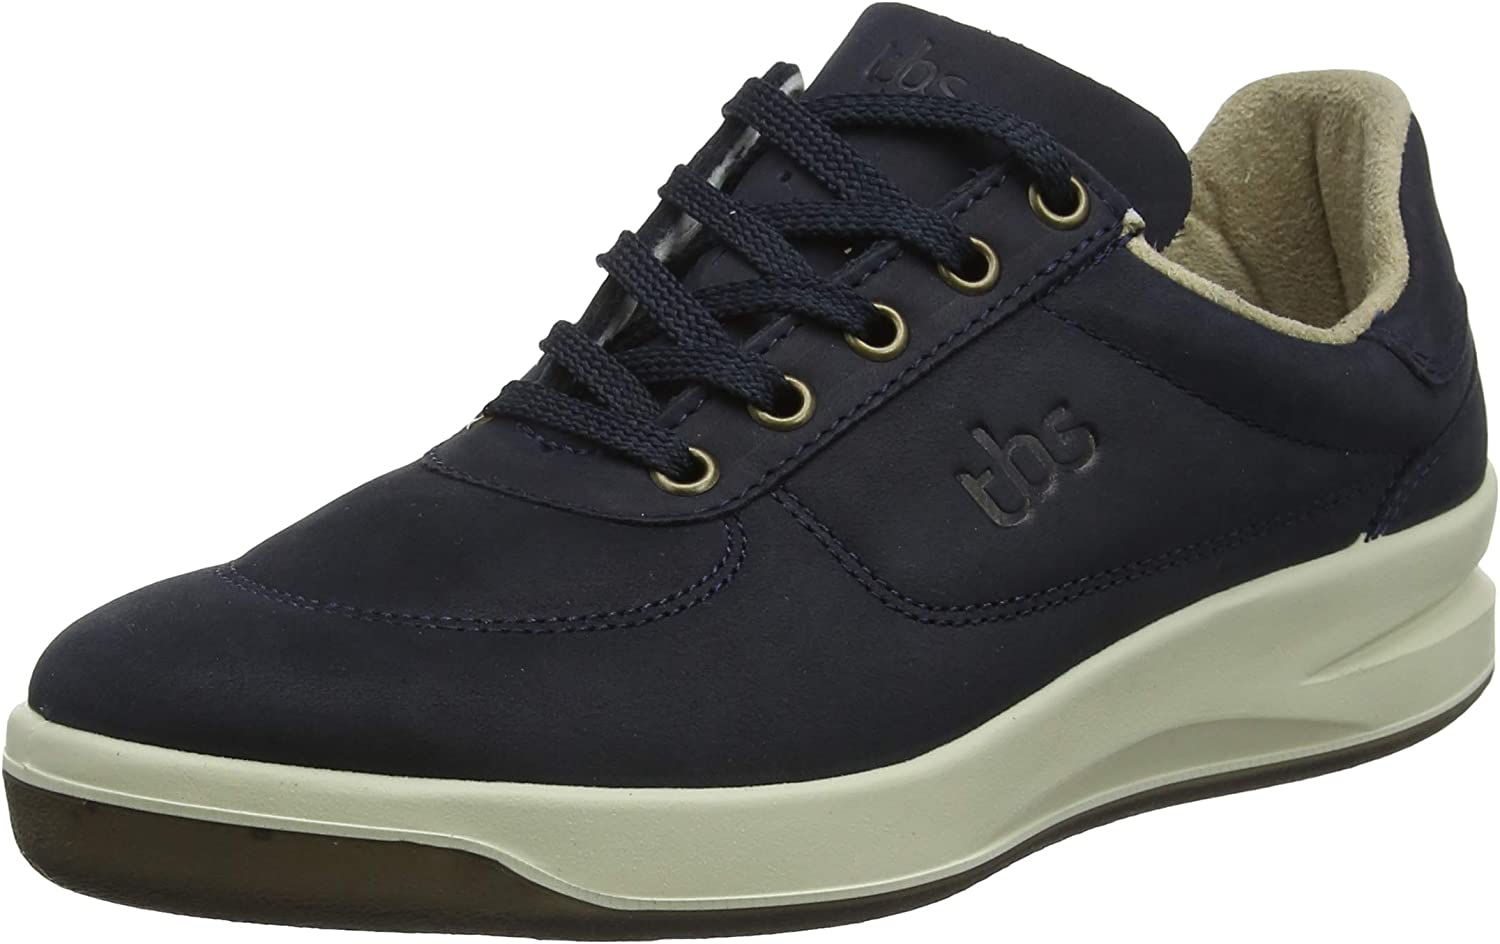 TBS Women's Multisport Indoor Outlet SALE Shoes Max 69% OFF